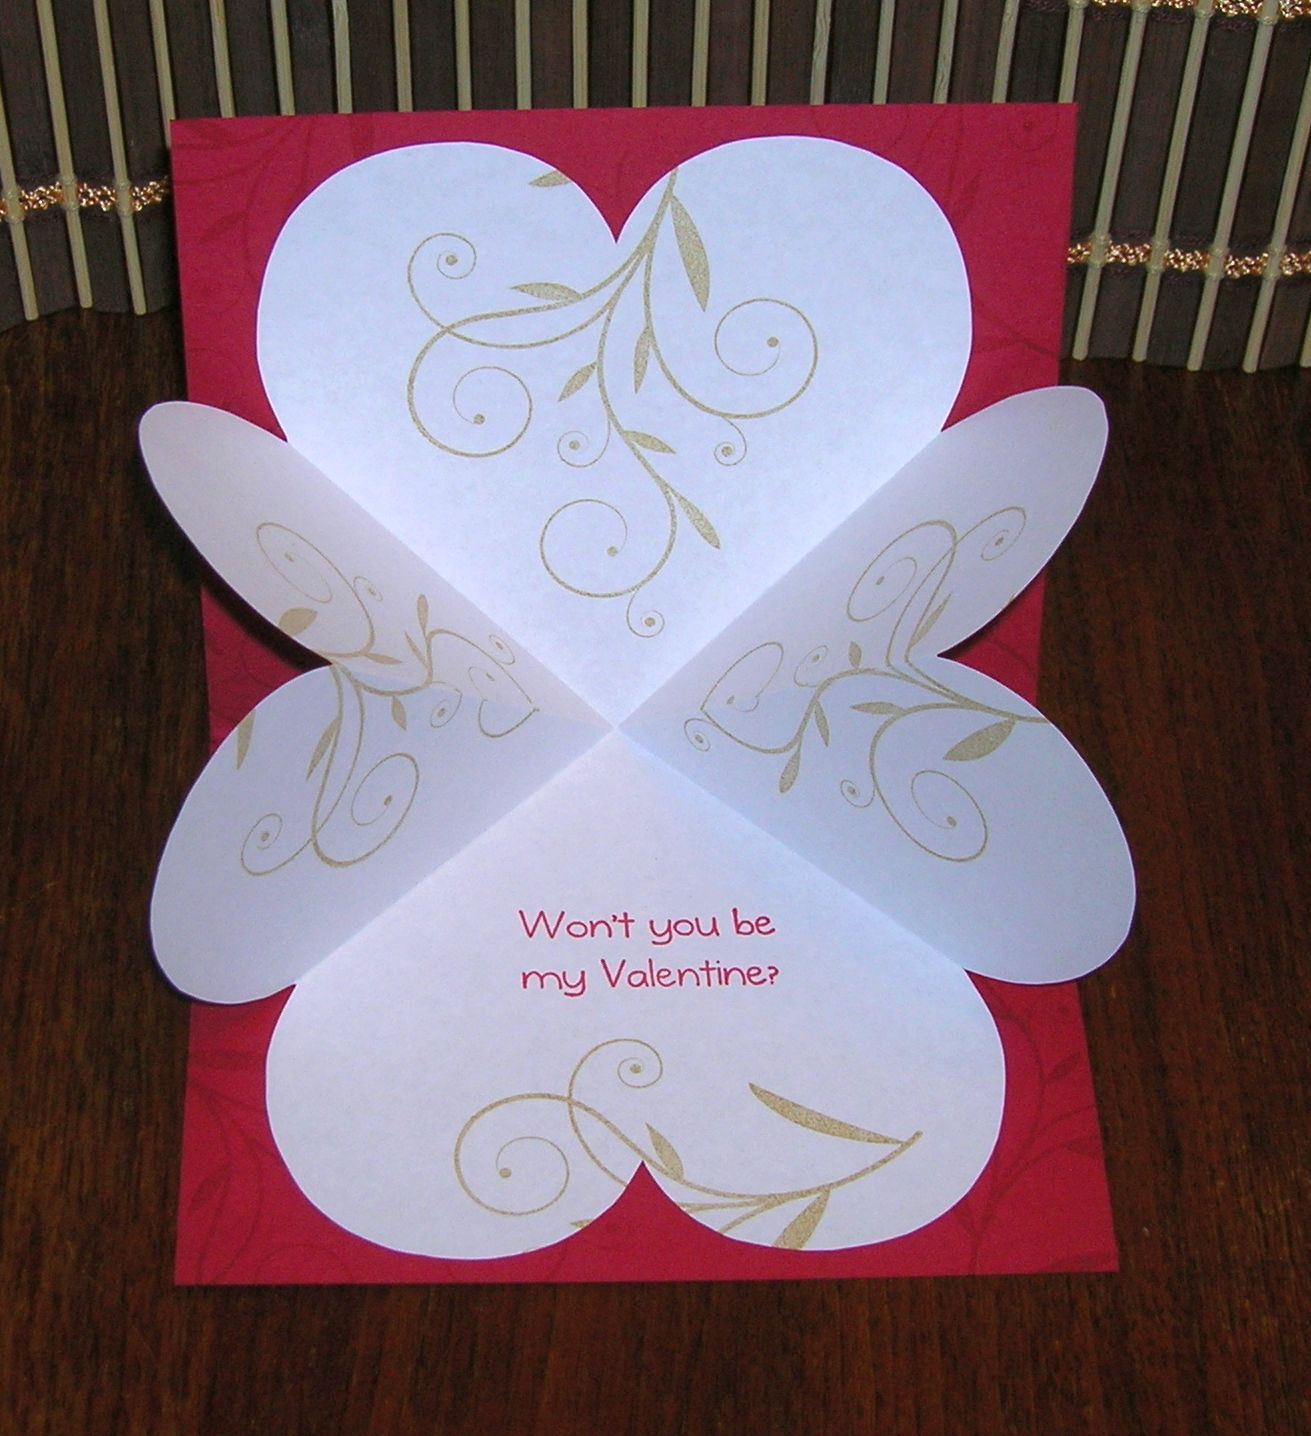 Victorine Stamps Heart Explosion Card Valentines Cards Valentine Day Cards Cards Handmade